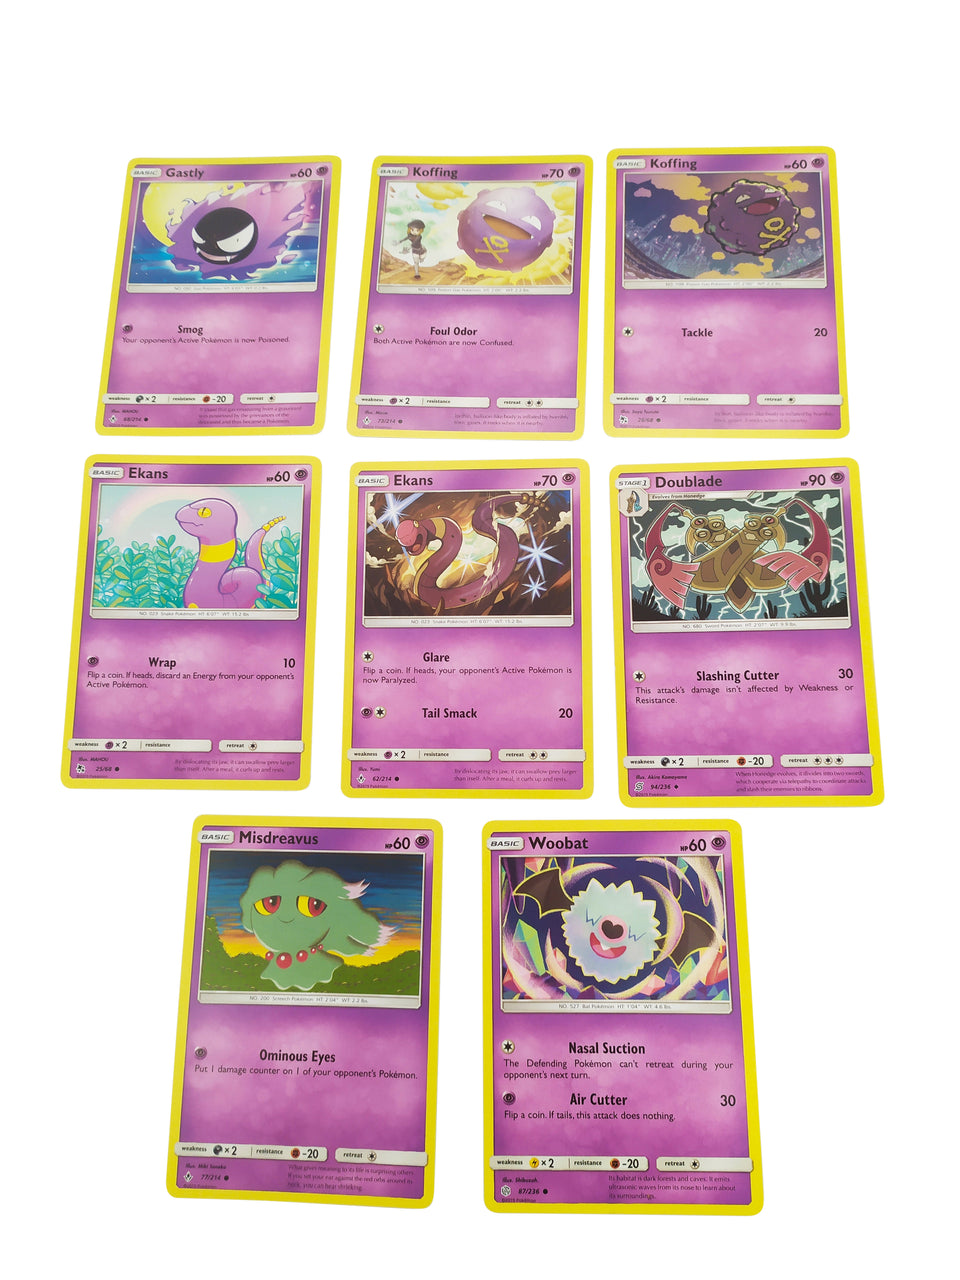 8 lot of pokemon cards - included : Gastly , Ekans , Misdreavus , Woobat , Doublade , Koffing